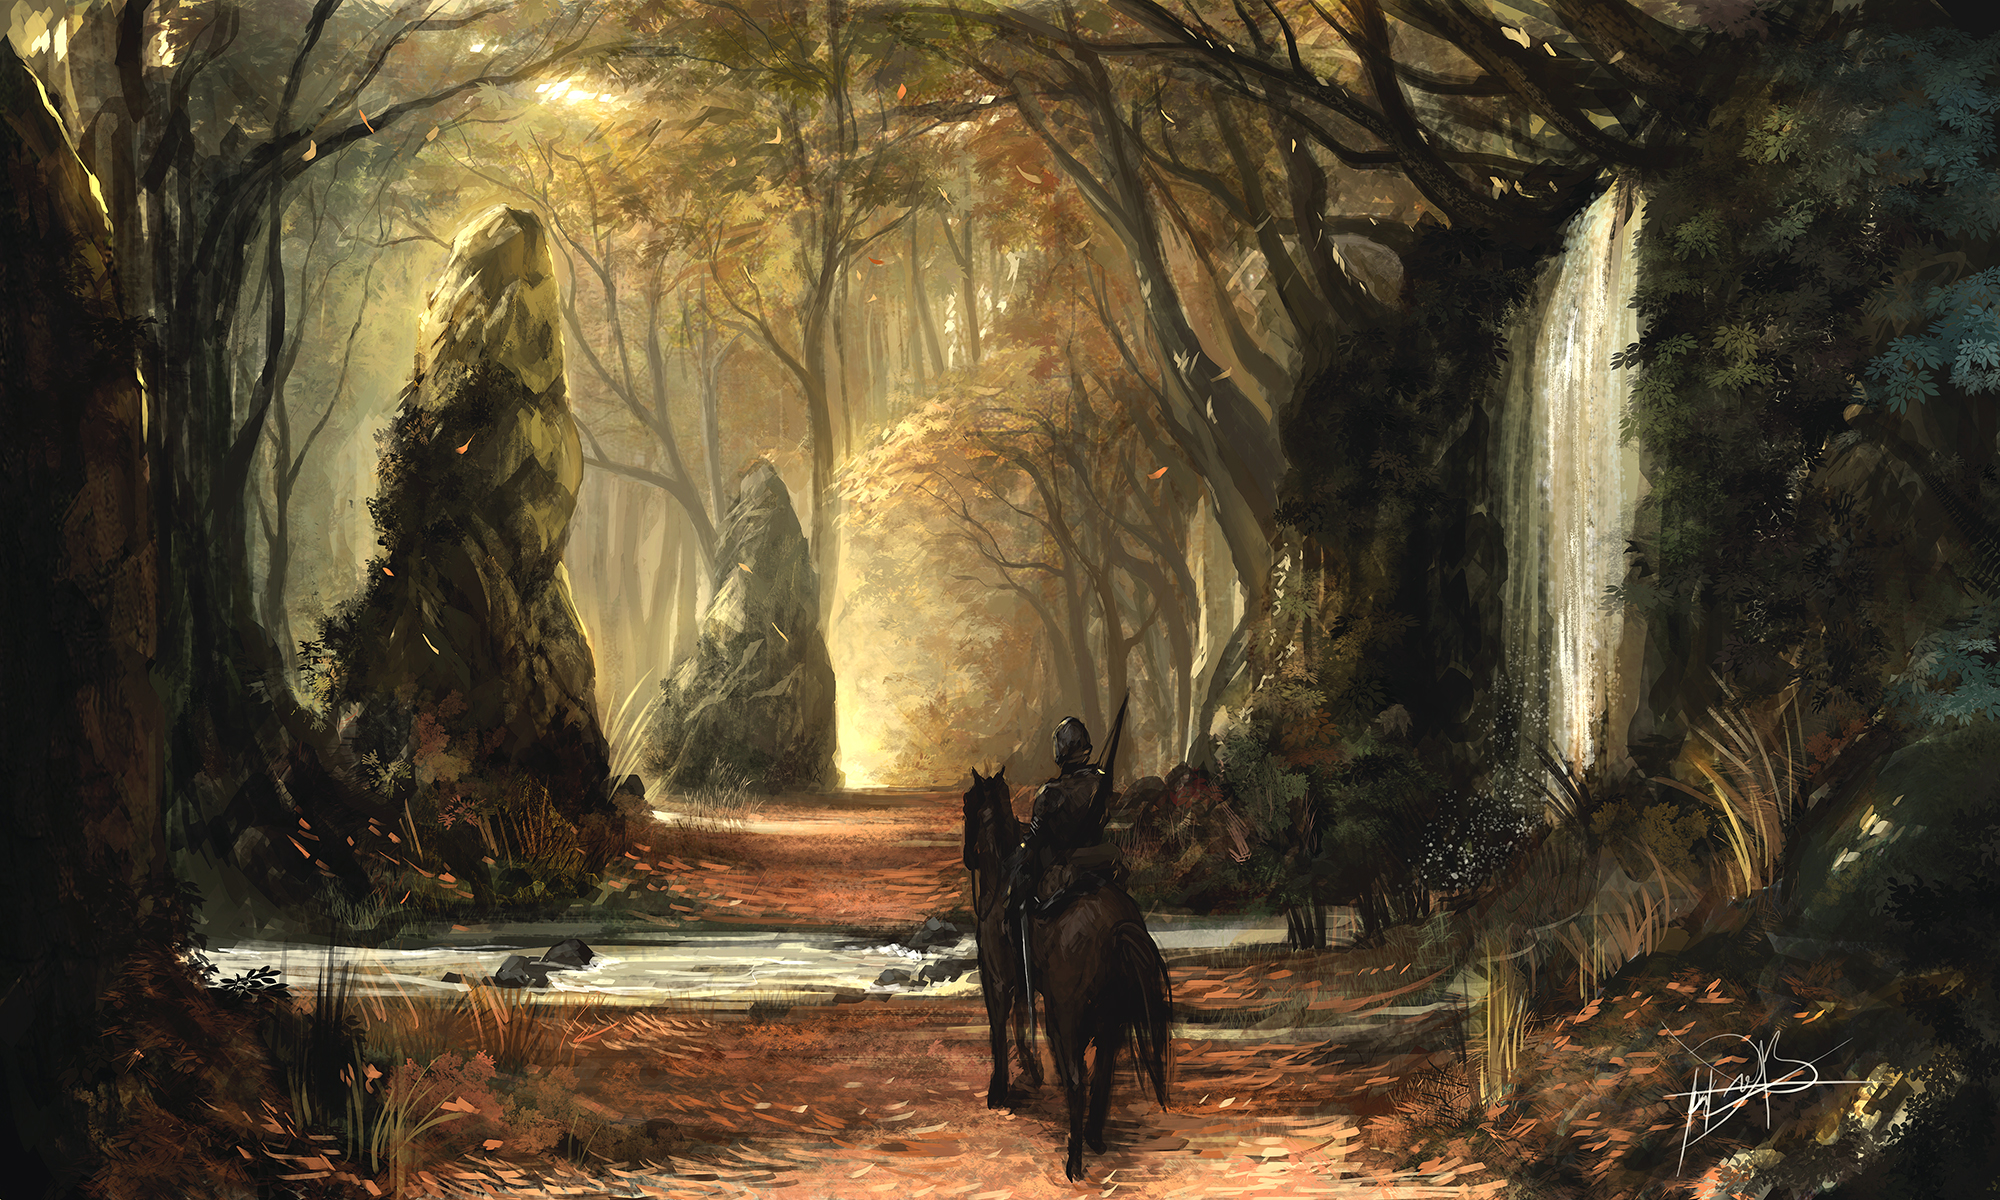 Golden Path by Ninjatic